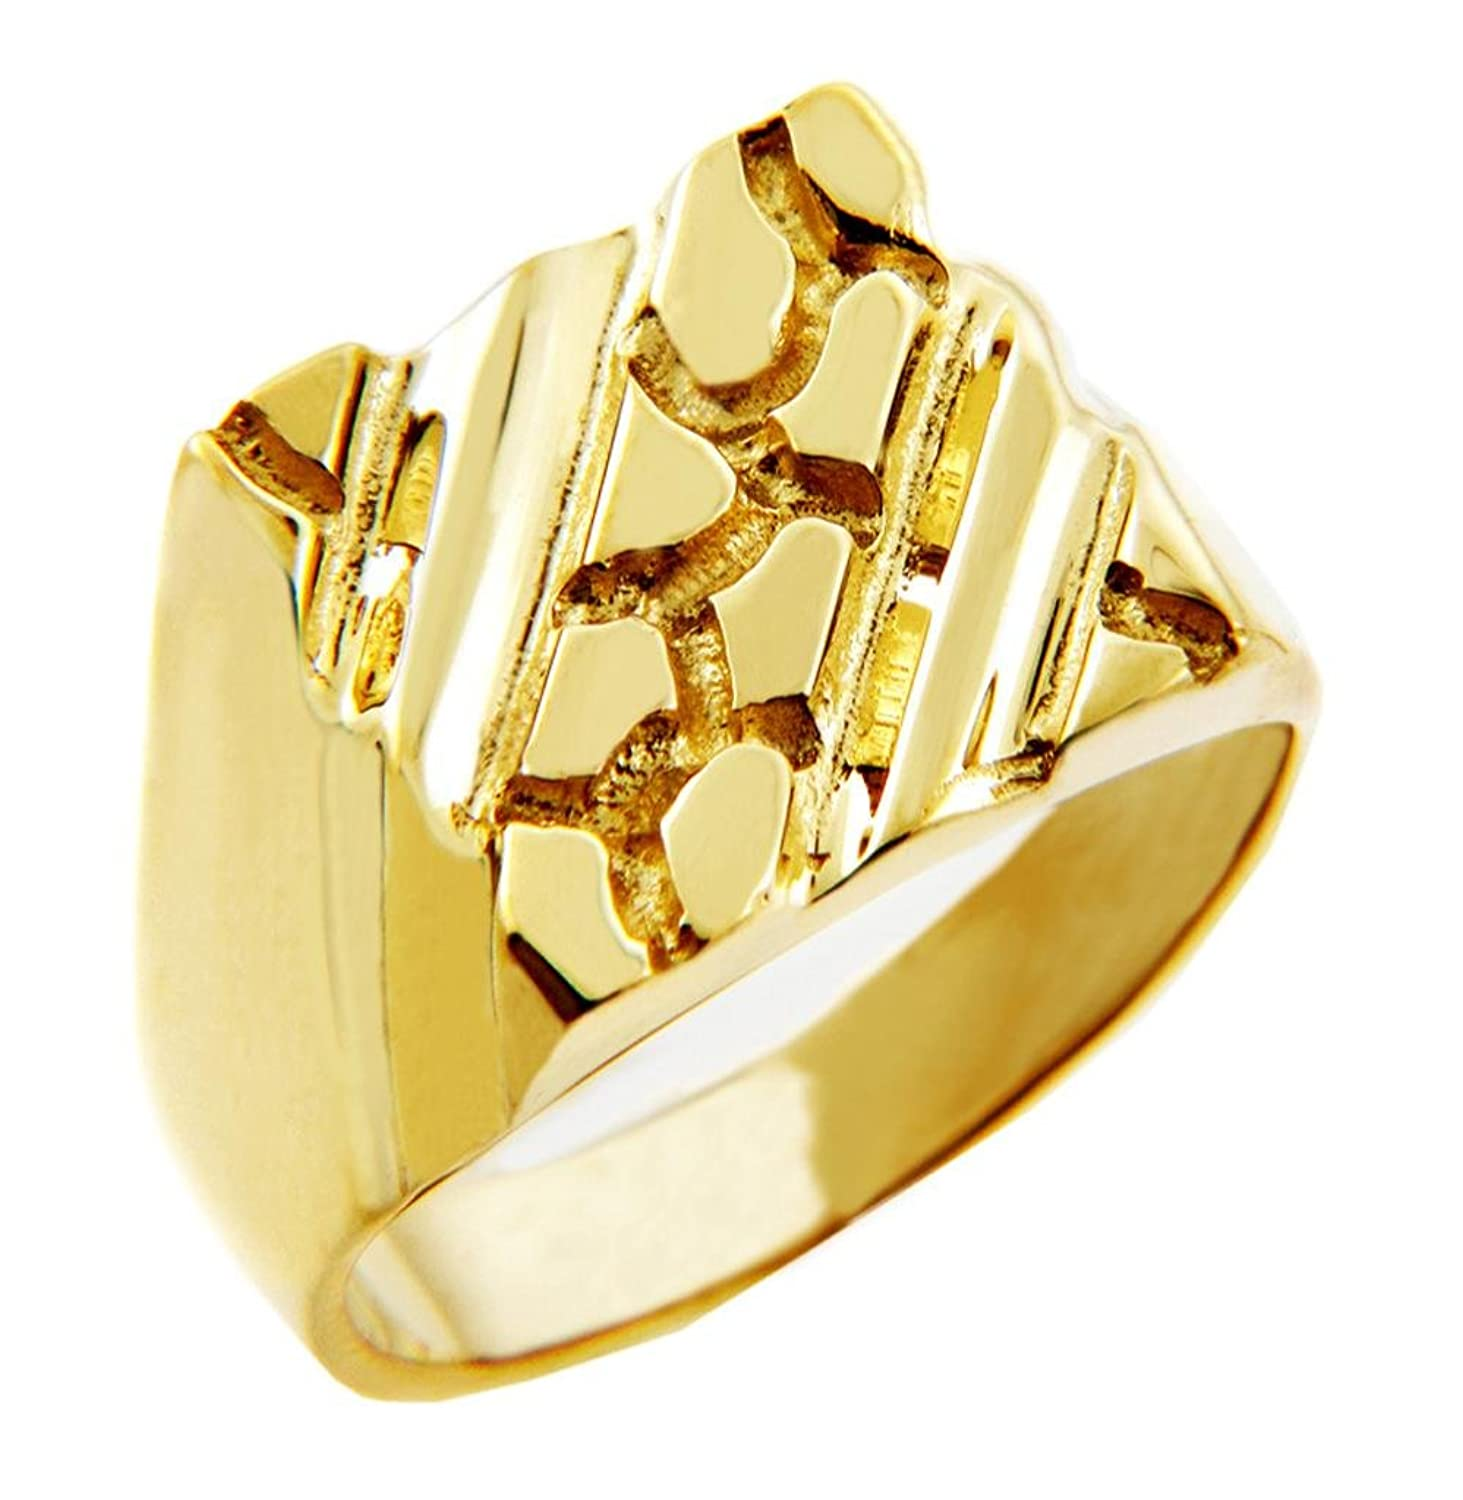 jewelry head mens gold rings s accent detail at cfm lions diamond palmbeach lion products yellow ring men